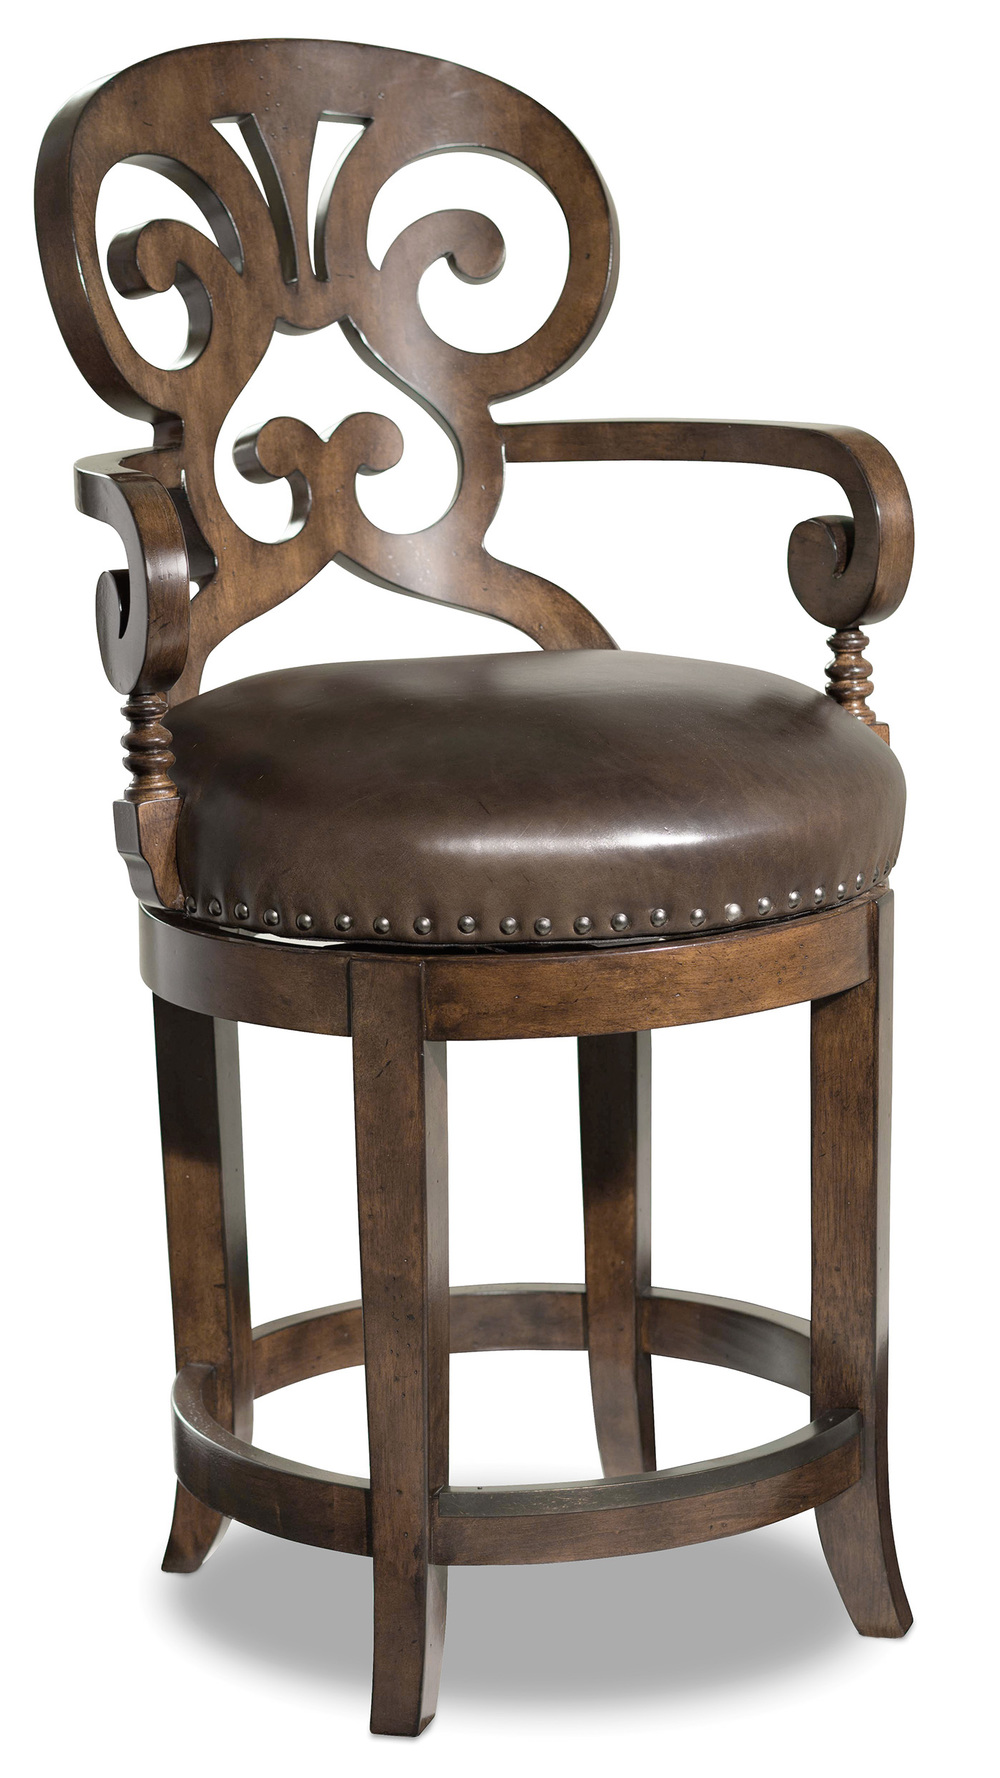 Hooker Furniture - Lainey Transitional Bar Stool